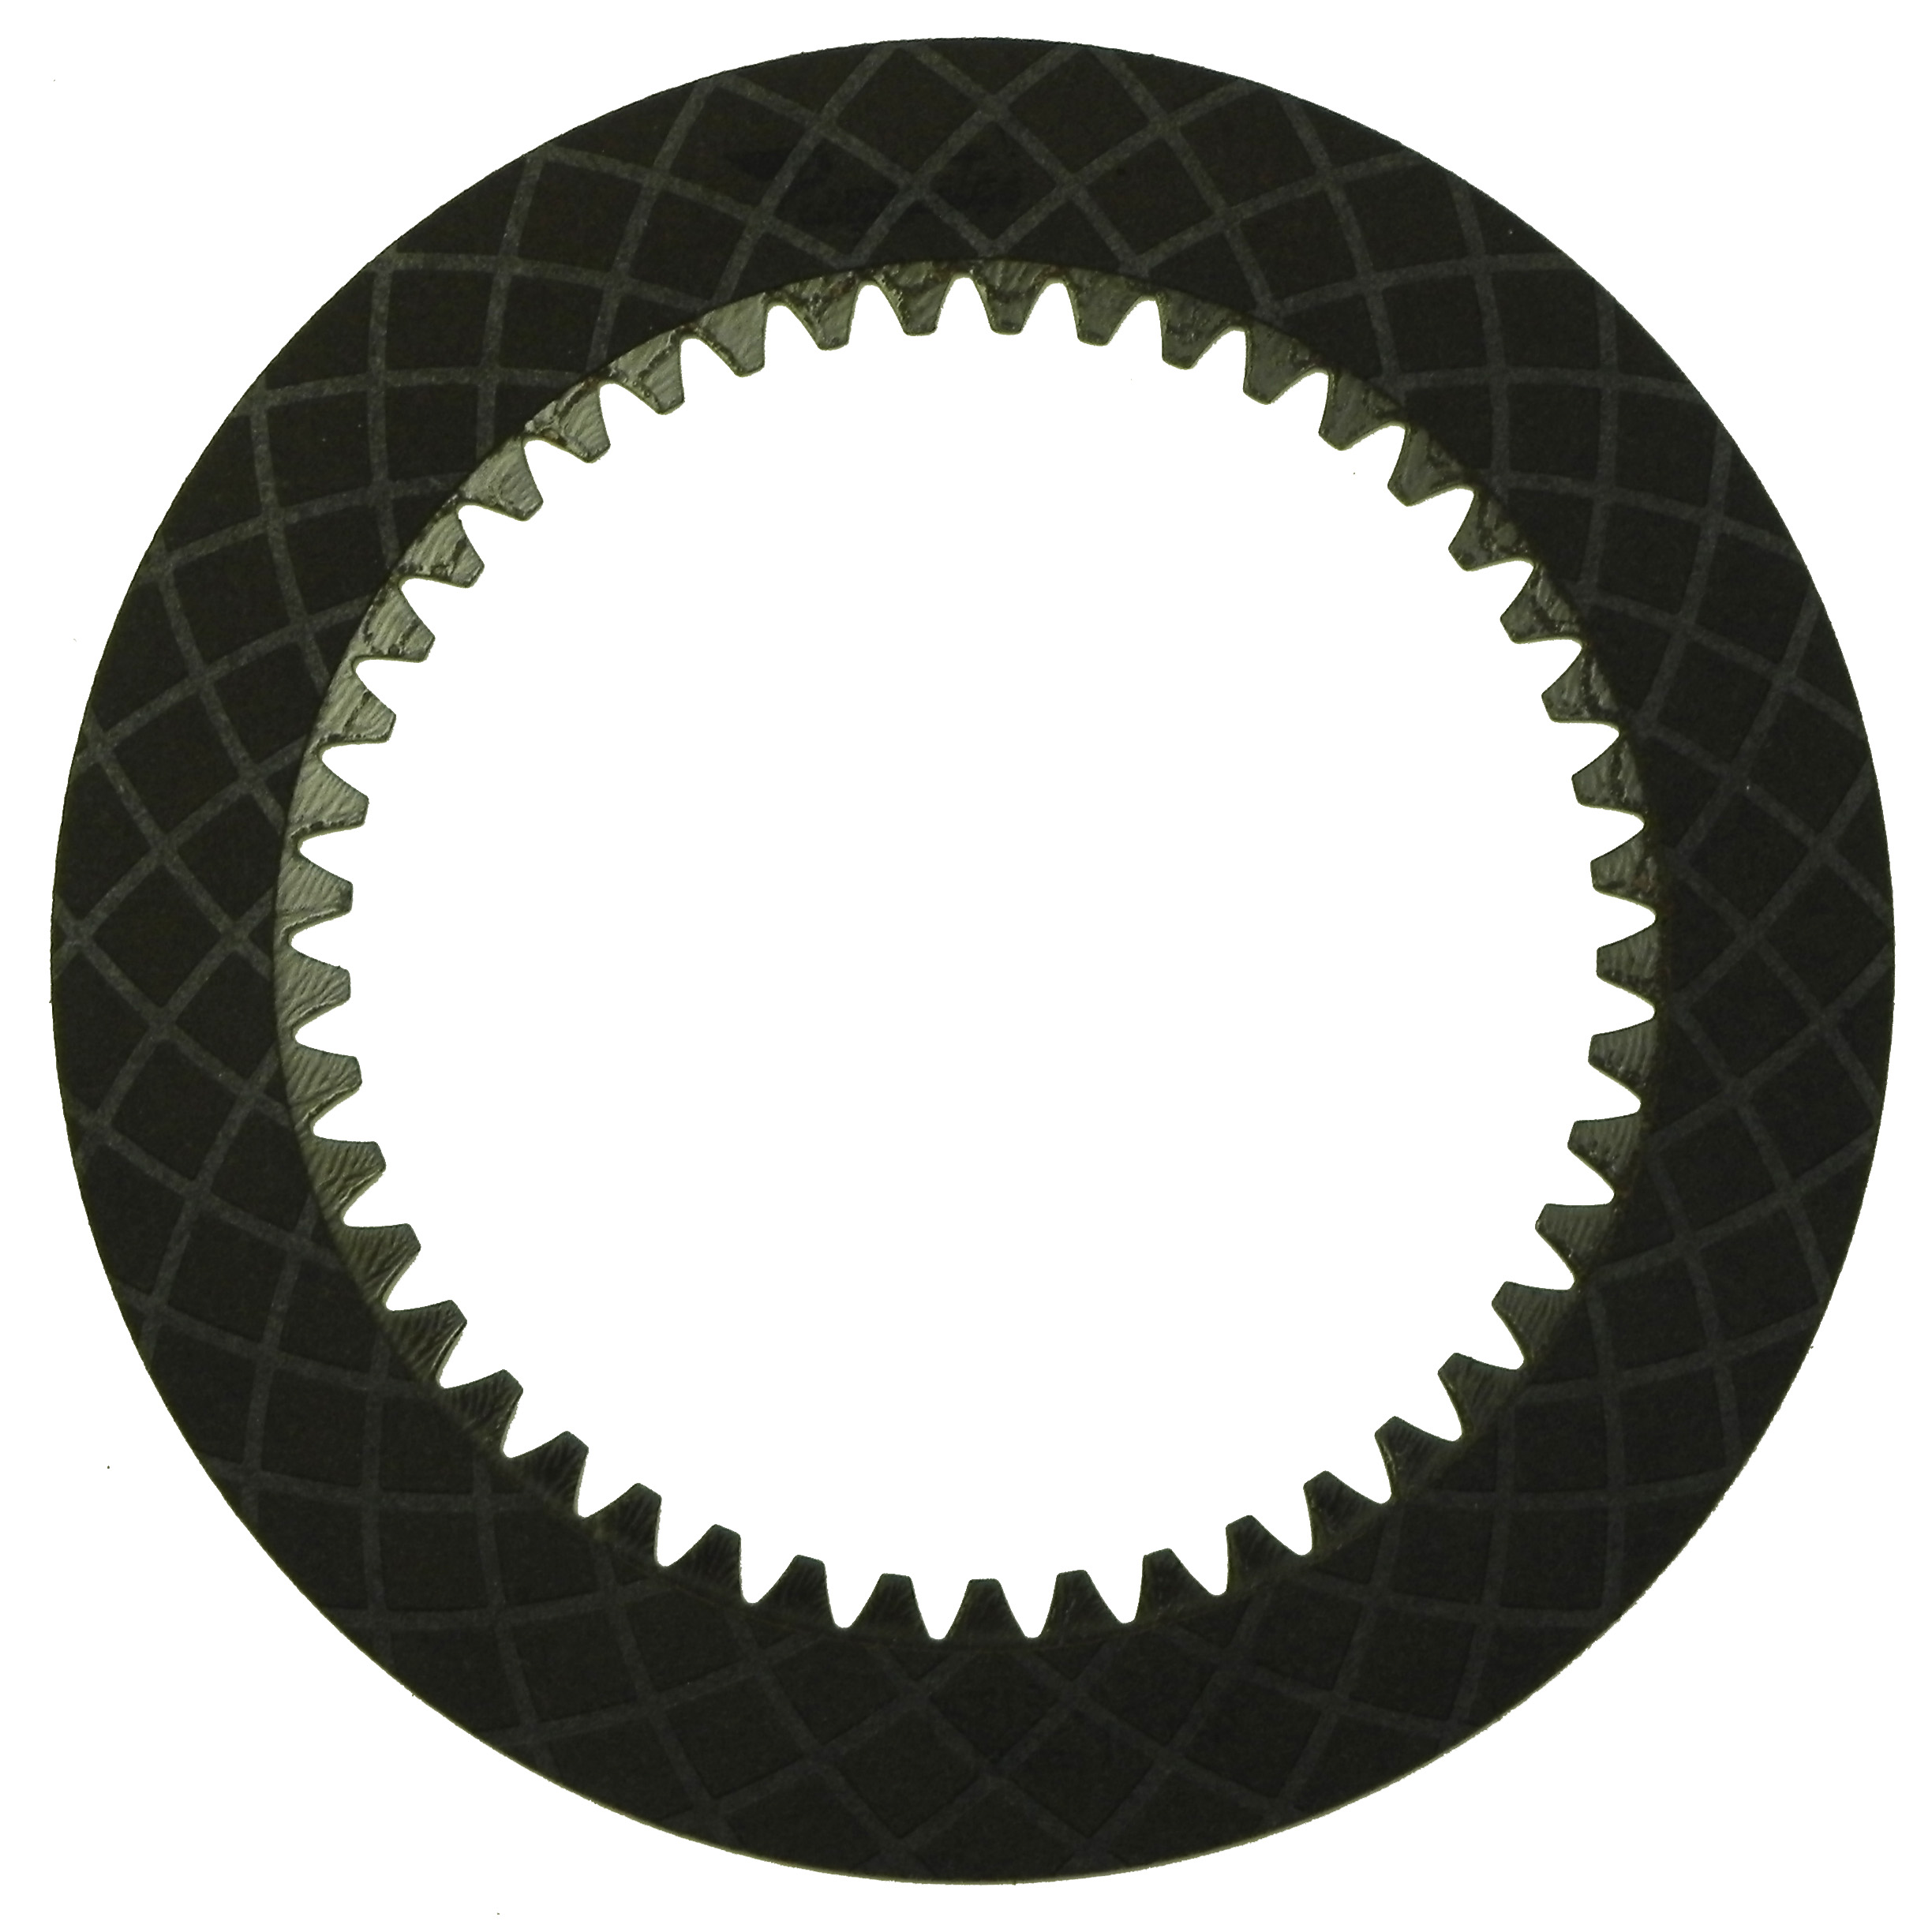 R571812 | 1991-2004 Friction Clutch Plate GPX 3rd, 4th GPX